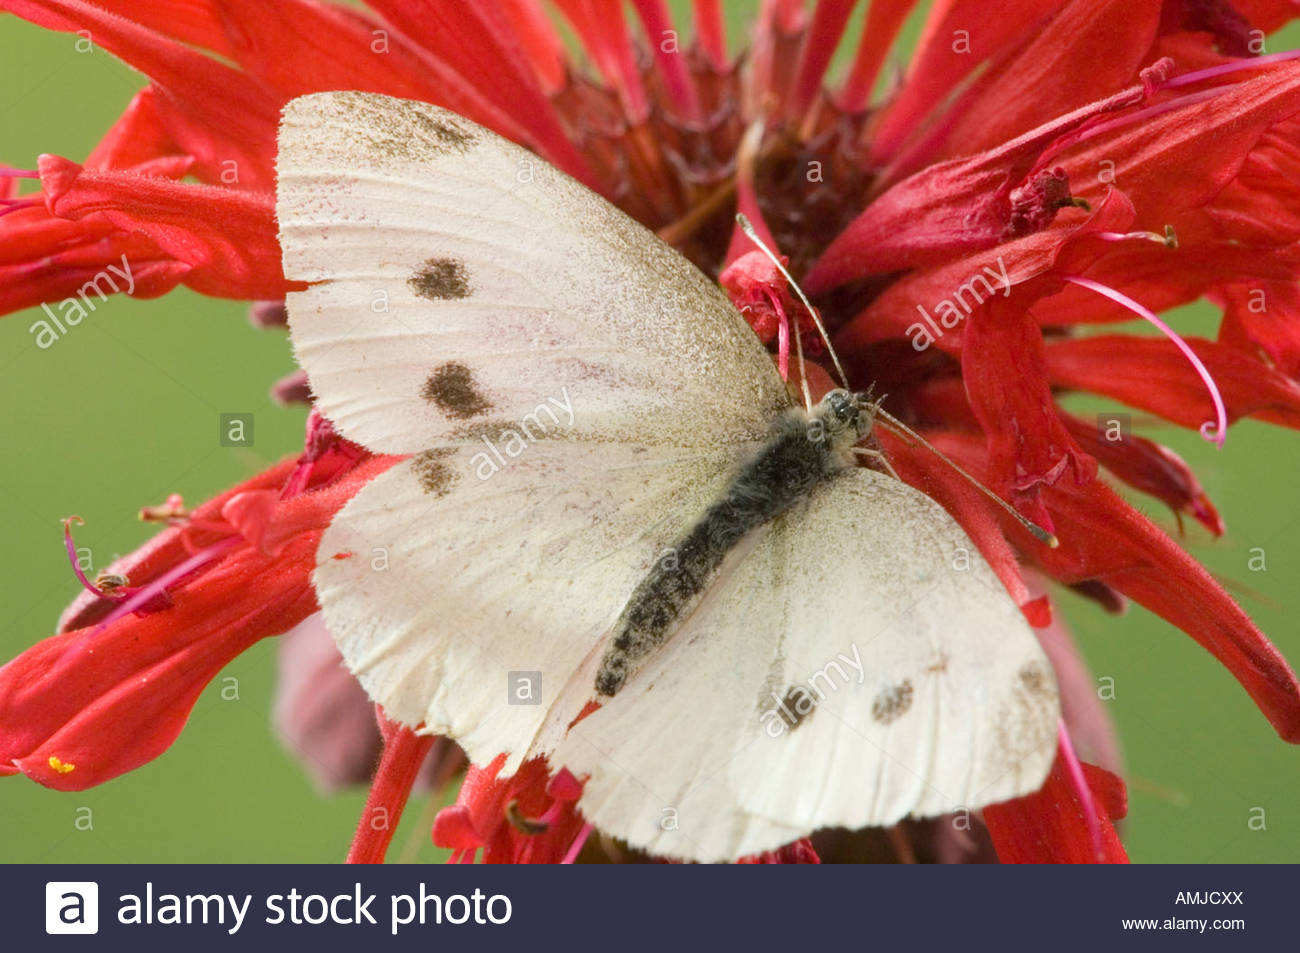 Cabbage White butterfly Pieris rapae on Bee Balm blossom Stock Photo